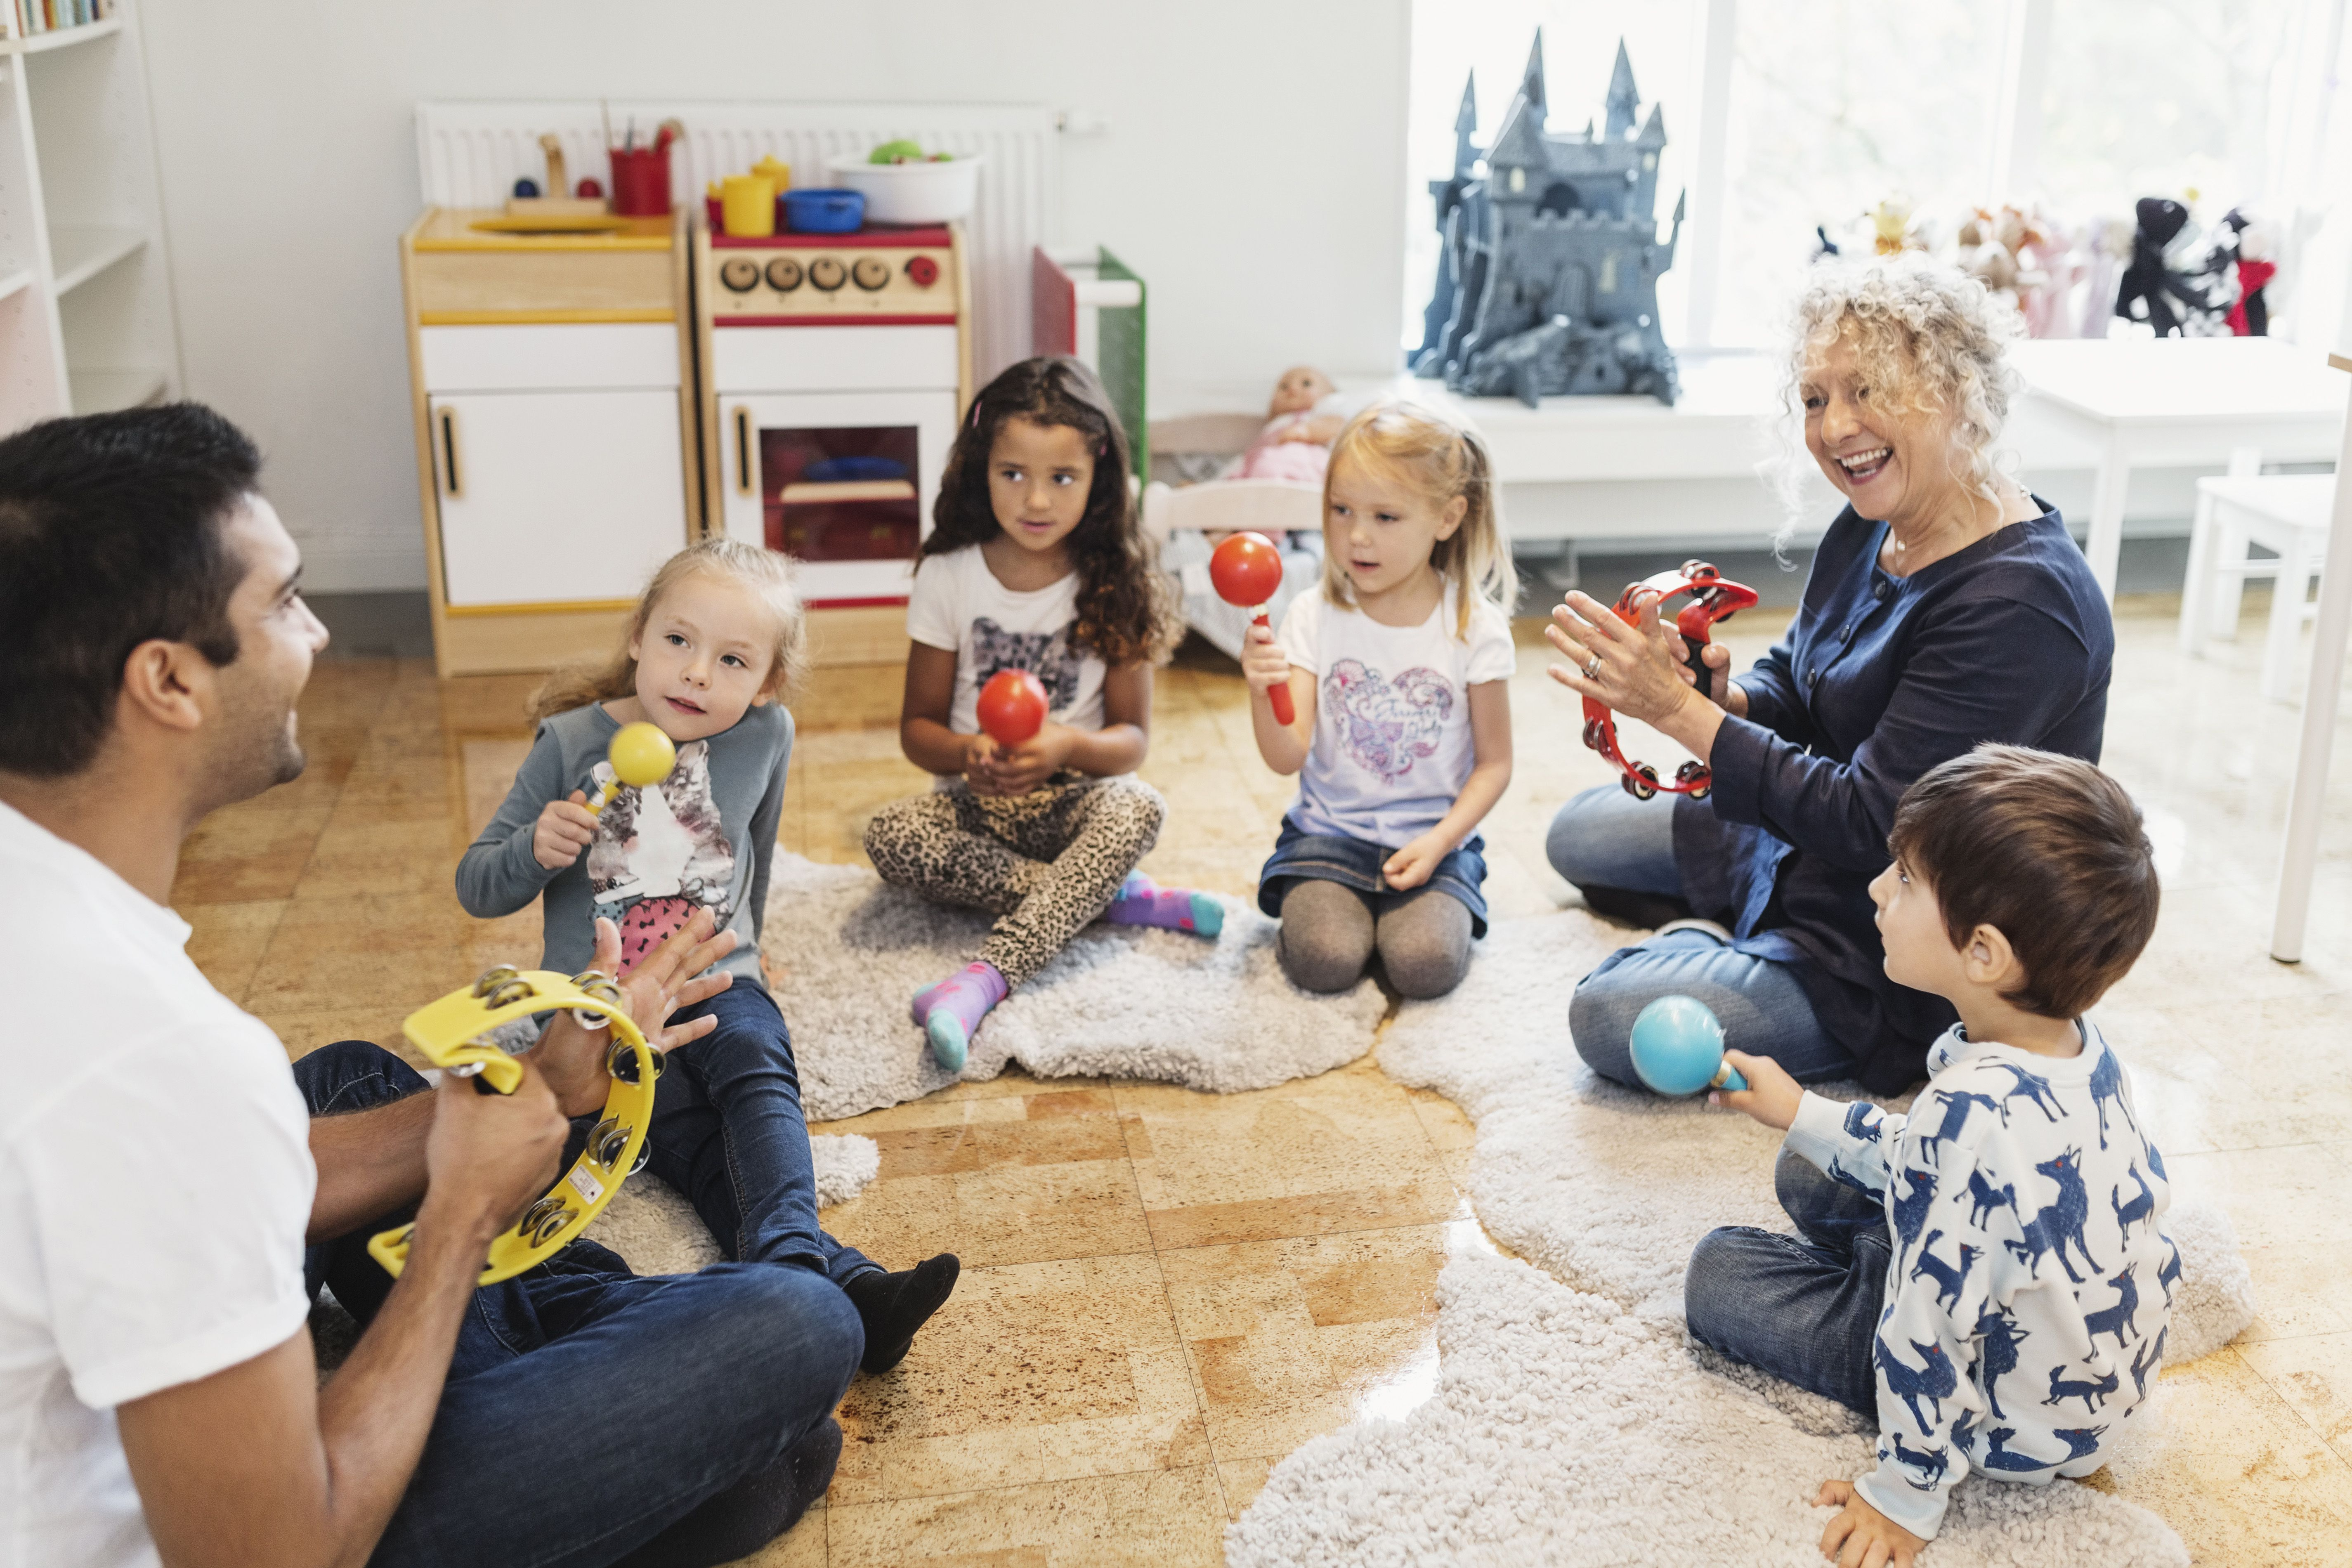 Young Kids Are Being Shuffled From One Activity To Another In >> 5 Musical Activities For Kids Of All Ages